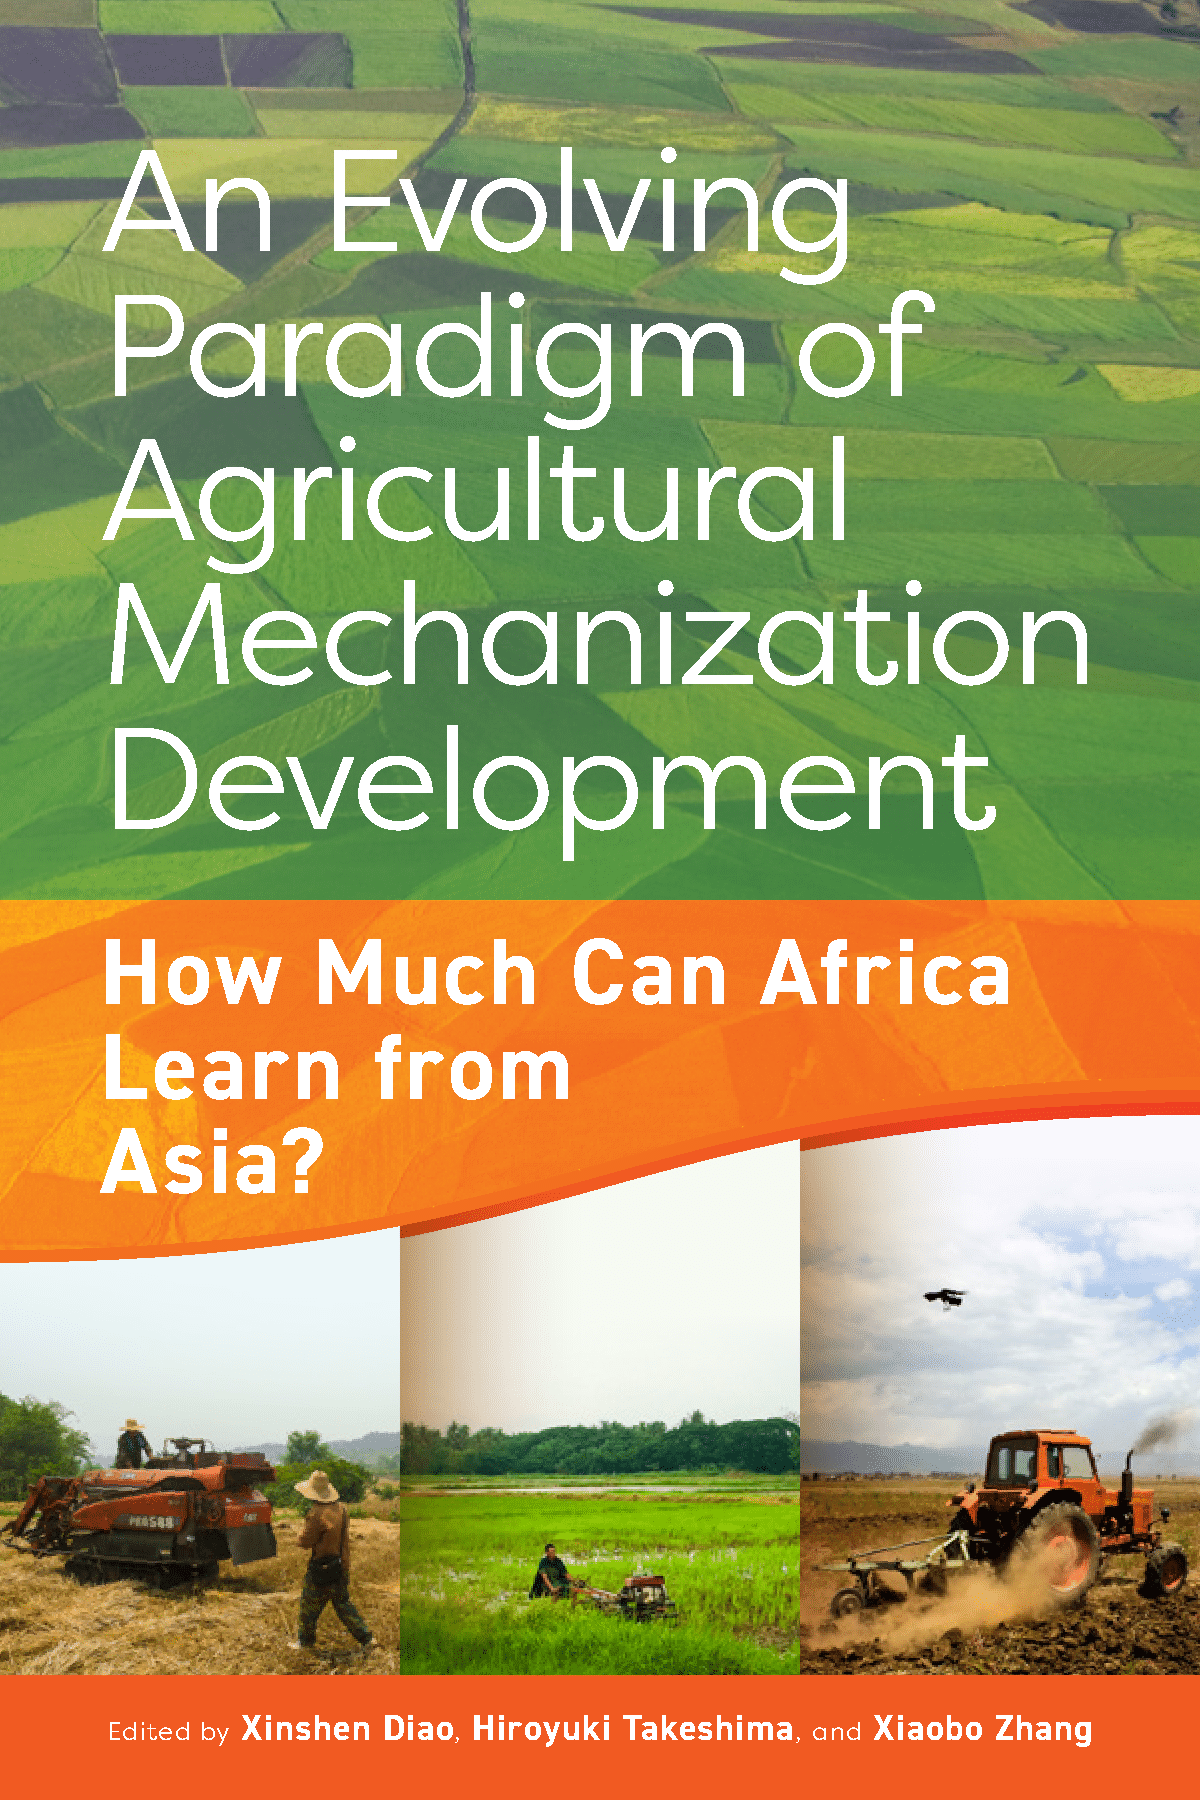 Book - An evolving paradigm of agricultural mechanization development: How much can Africa learn from Asia?